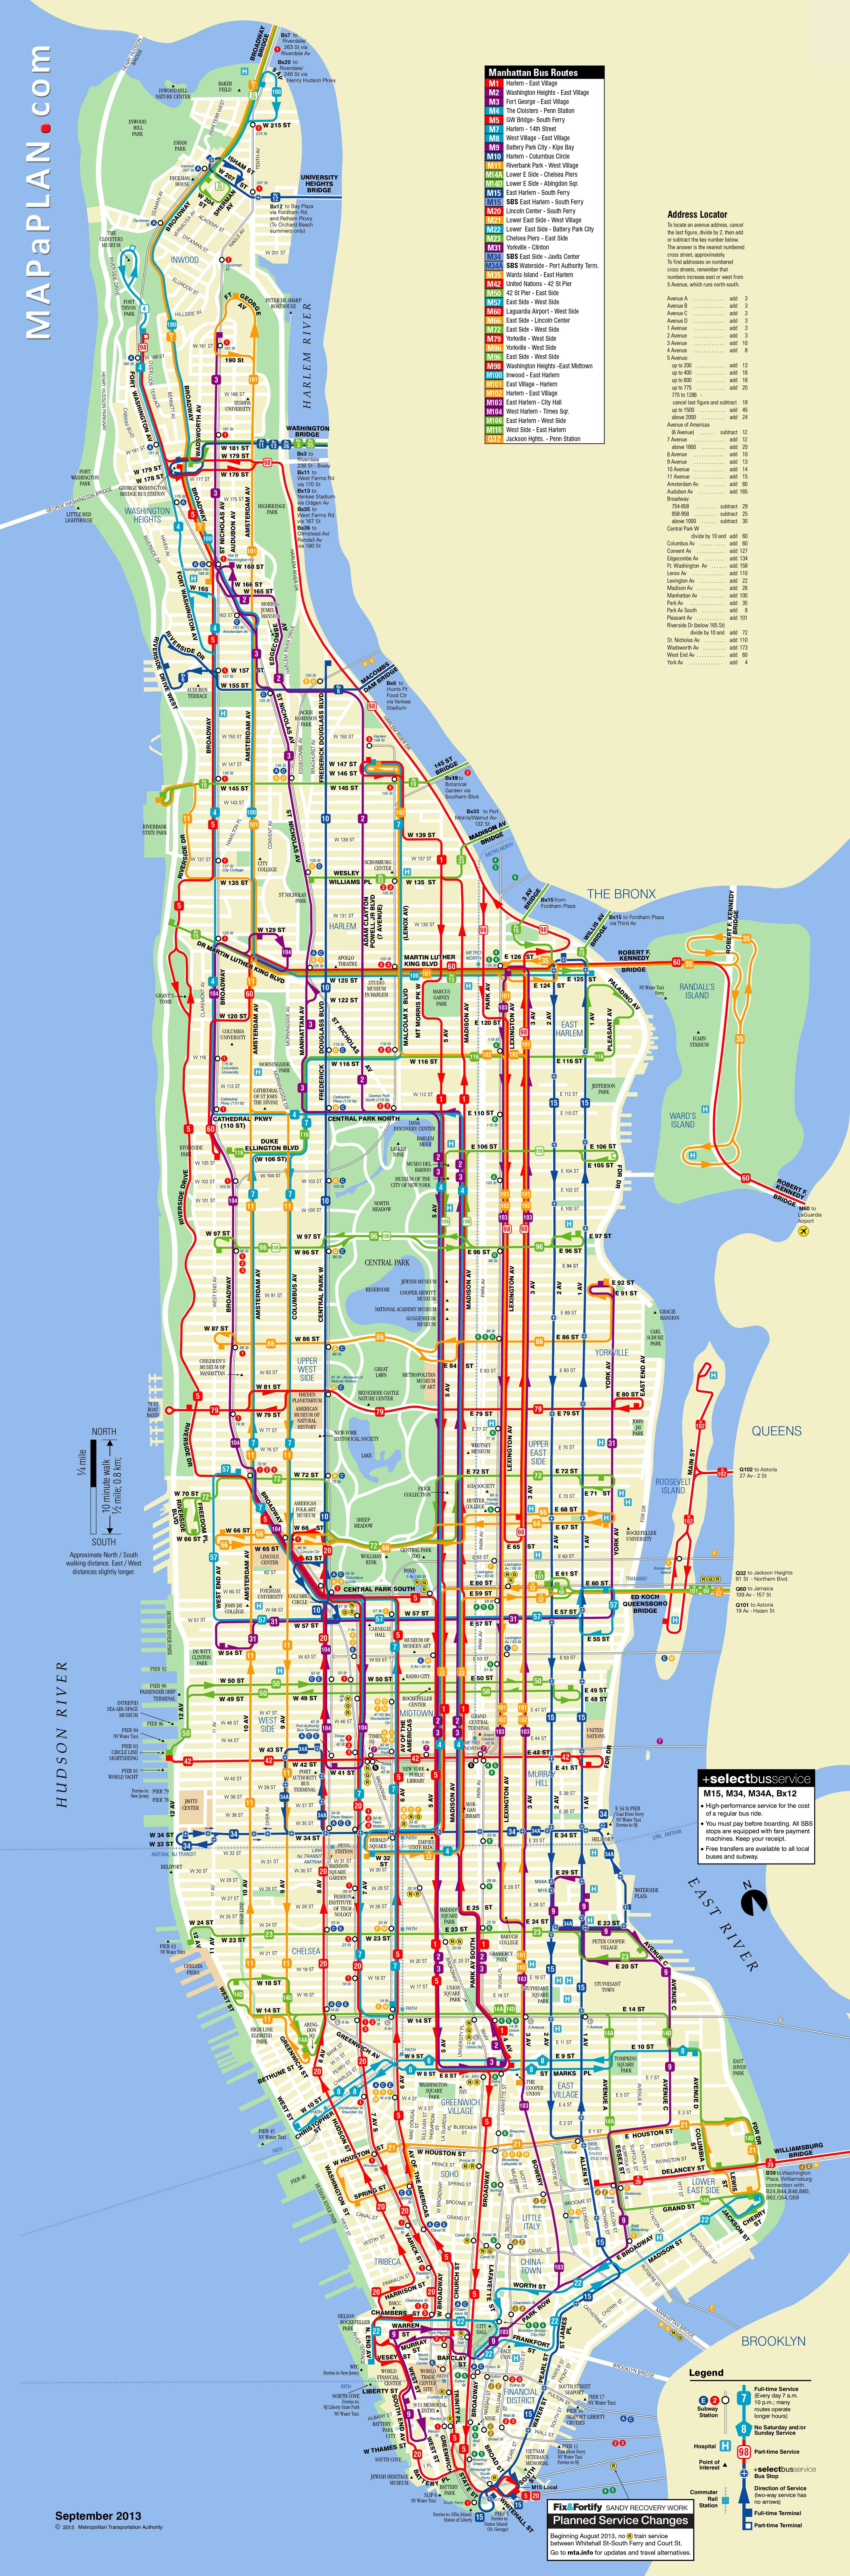 Manhattan Bus Travel Routes New York Top Tourist Attractions Map